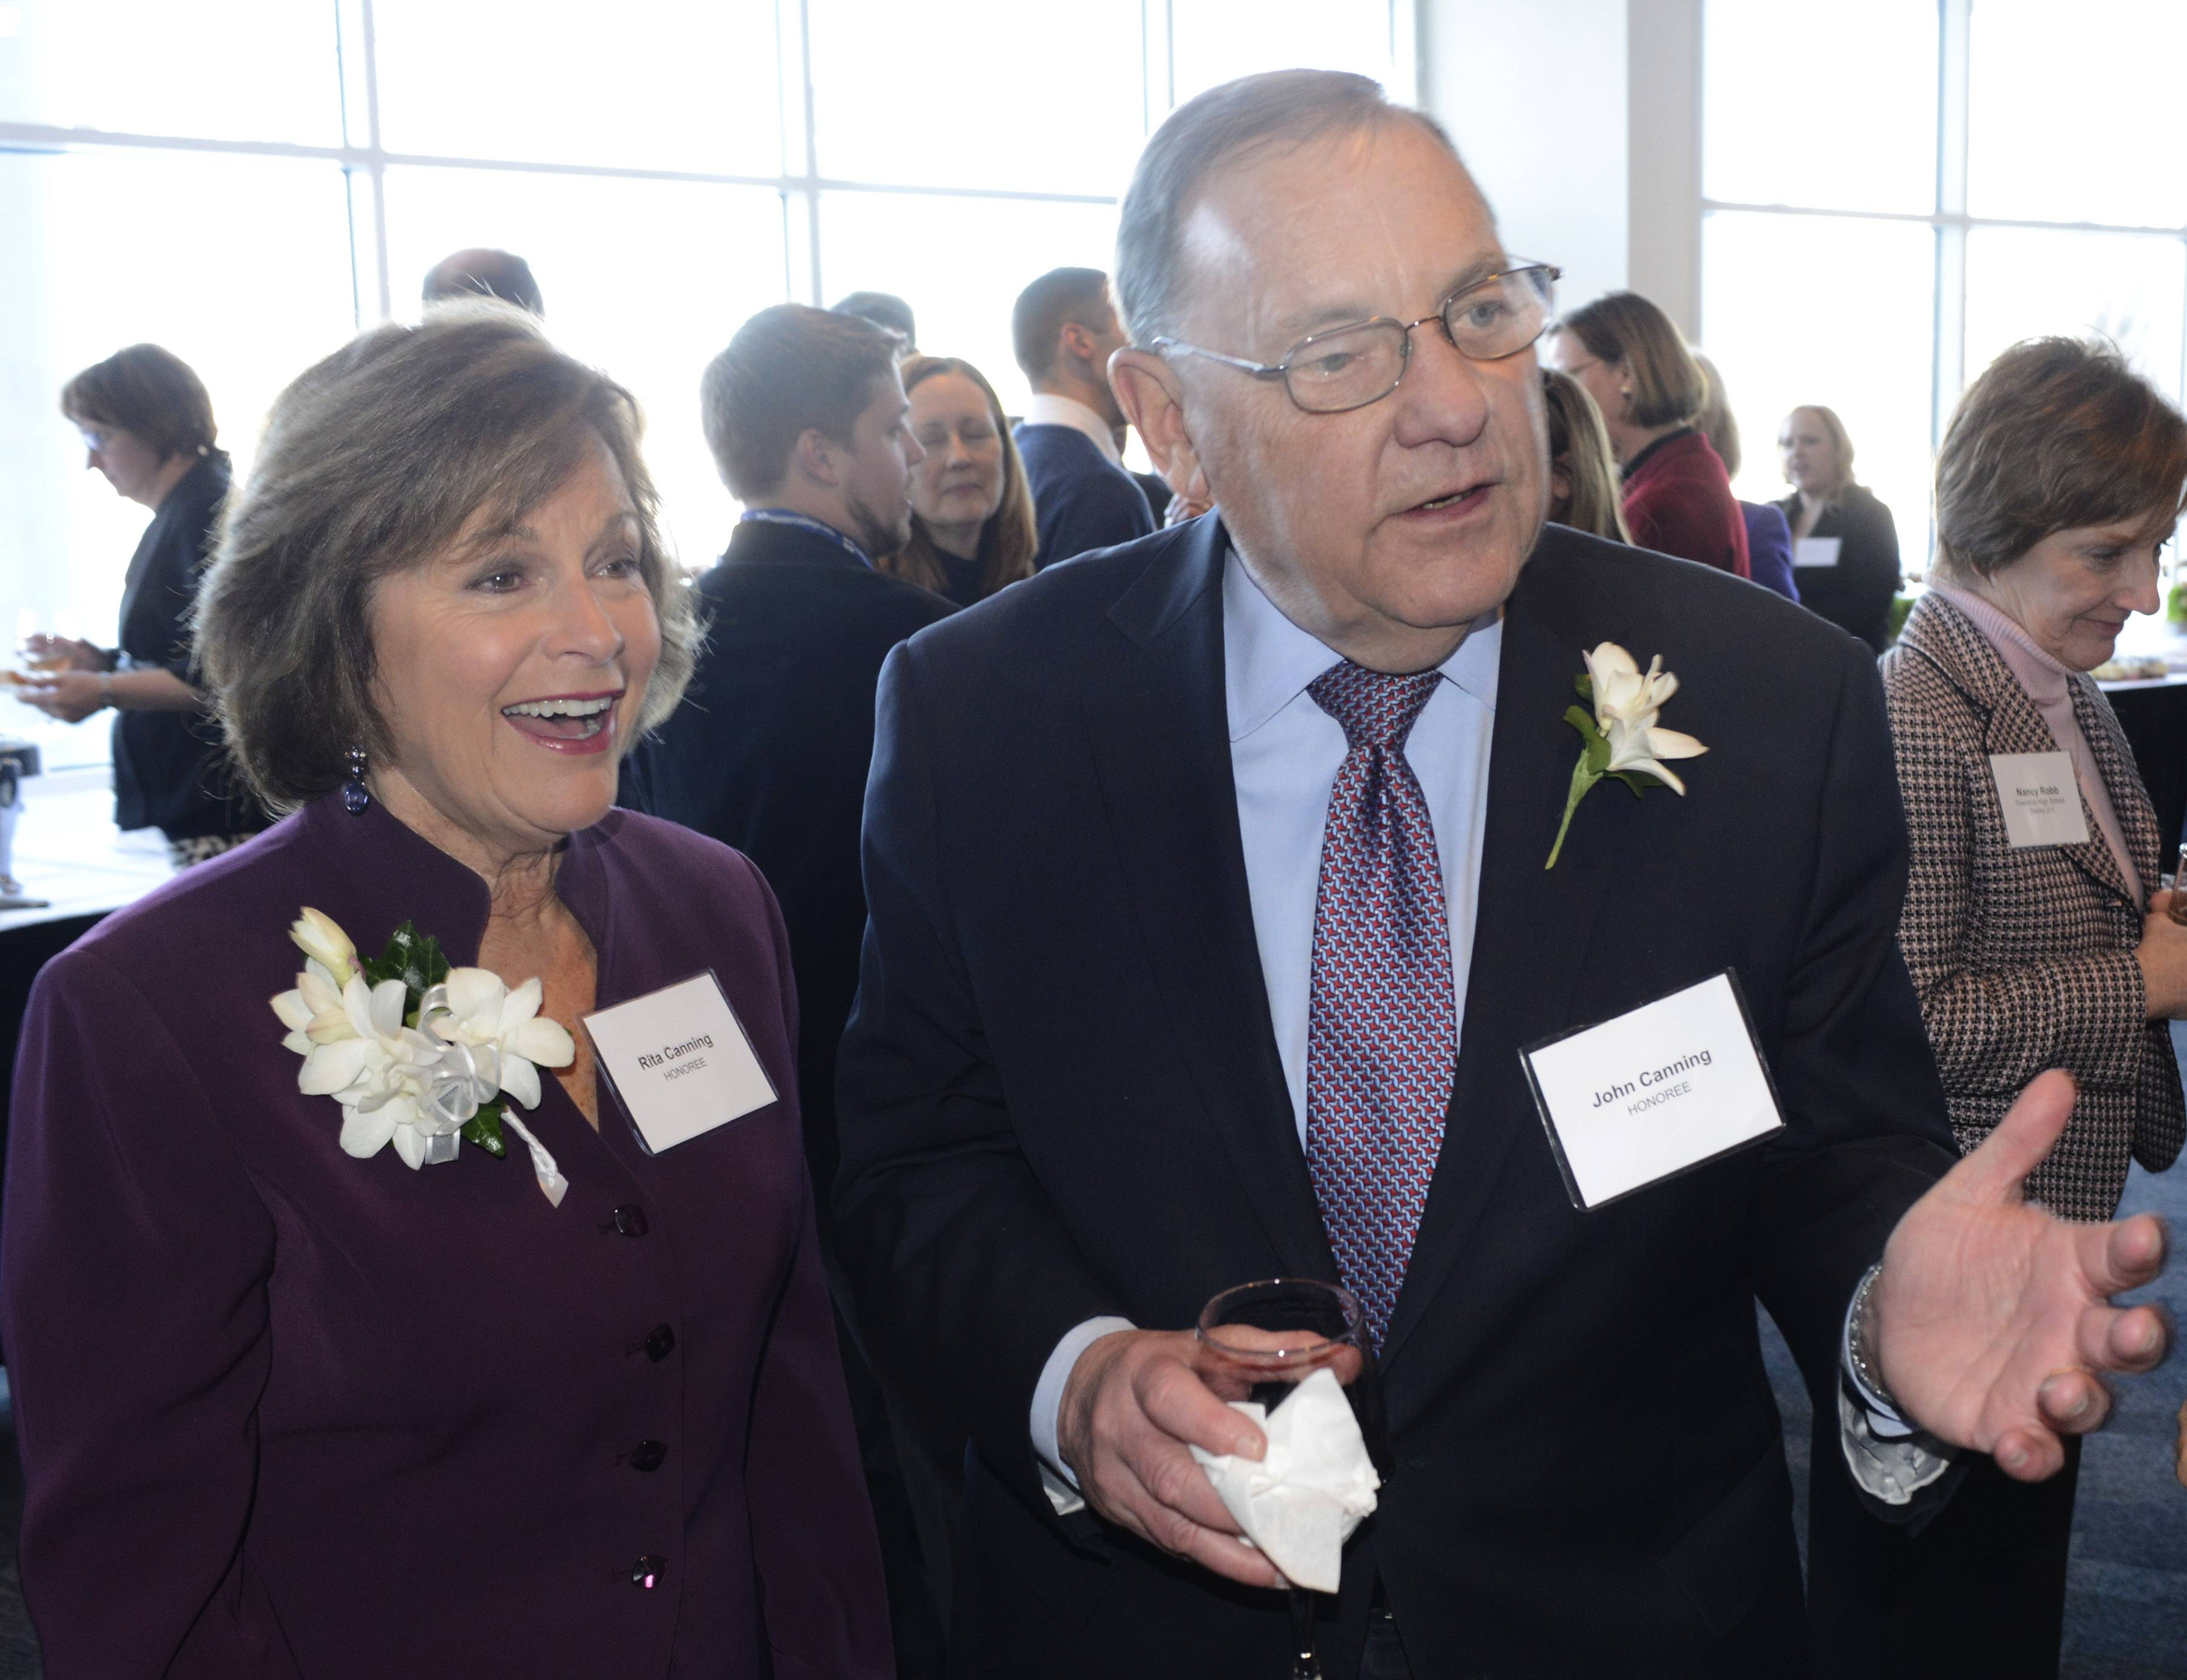 "Rita and John Canning of Inverness greet guests during a reception before the announcement of the couple's $1 million gift to Harper College in Palatine. The gift will benefit the Rita and John Canning women's Program. , which"" provides educational support, resources and the opportunity for a fresh start for single parents, displaced homemakers and others, many of whom are survivors of domestic violence,"" according to a Harper College news release."